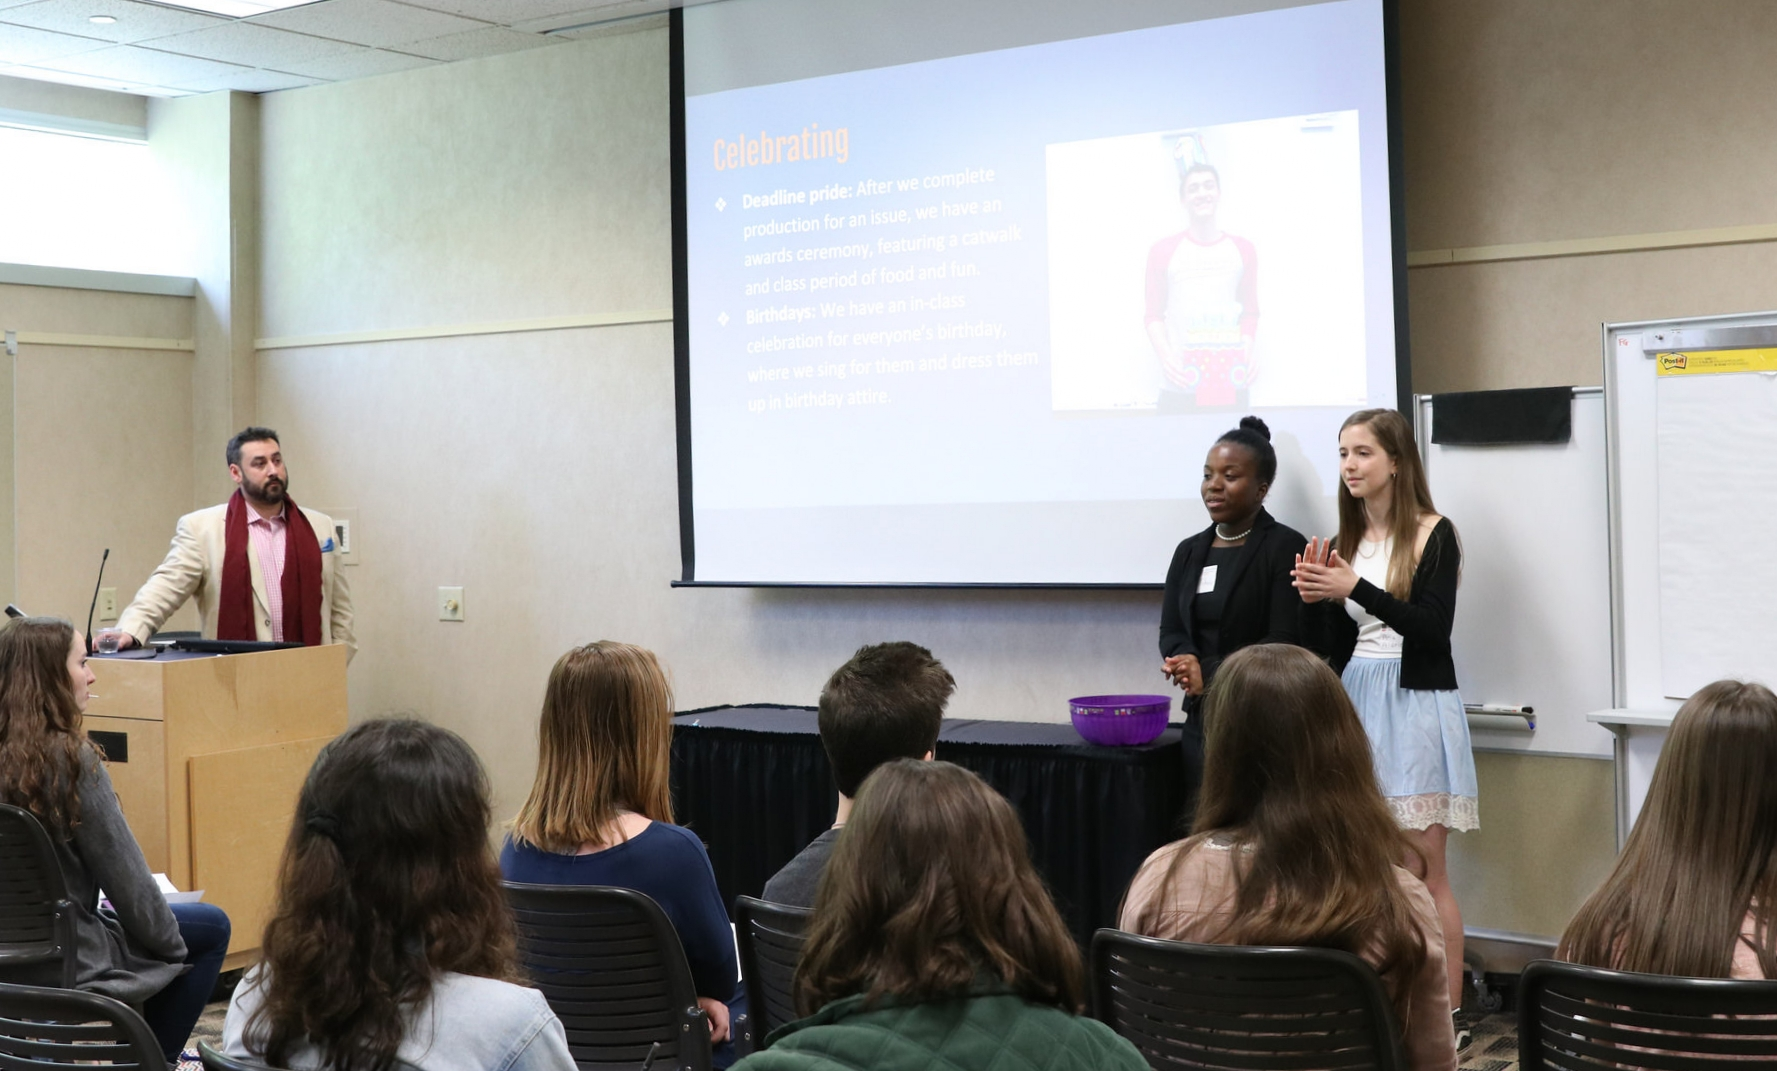 Clarke central Odyssey media group members bria echols (center) and ANa aldridge present at the GSPA spring workshop on april 17, 2018, as adviser David Ragsdale looks on.